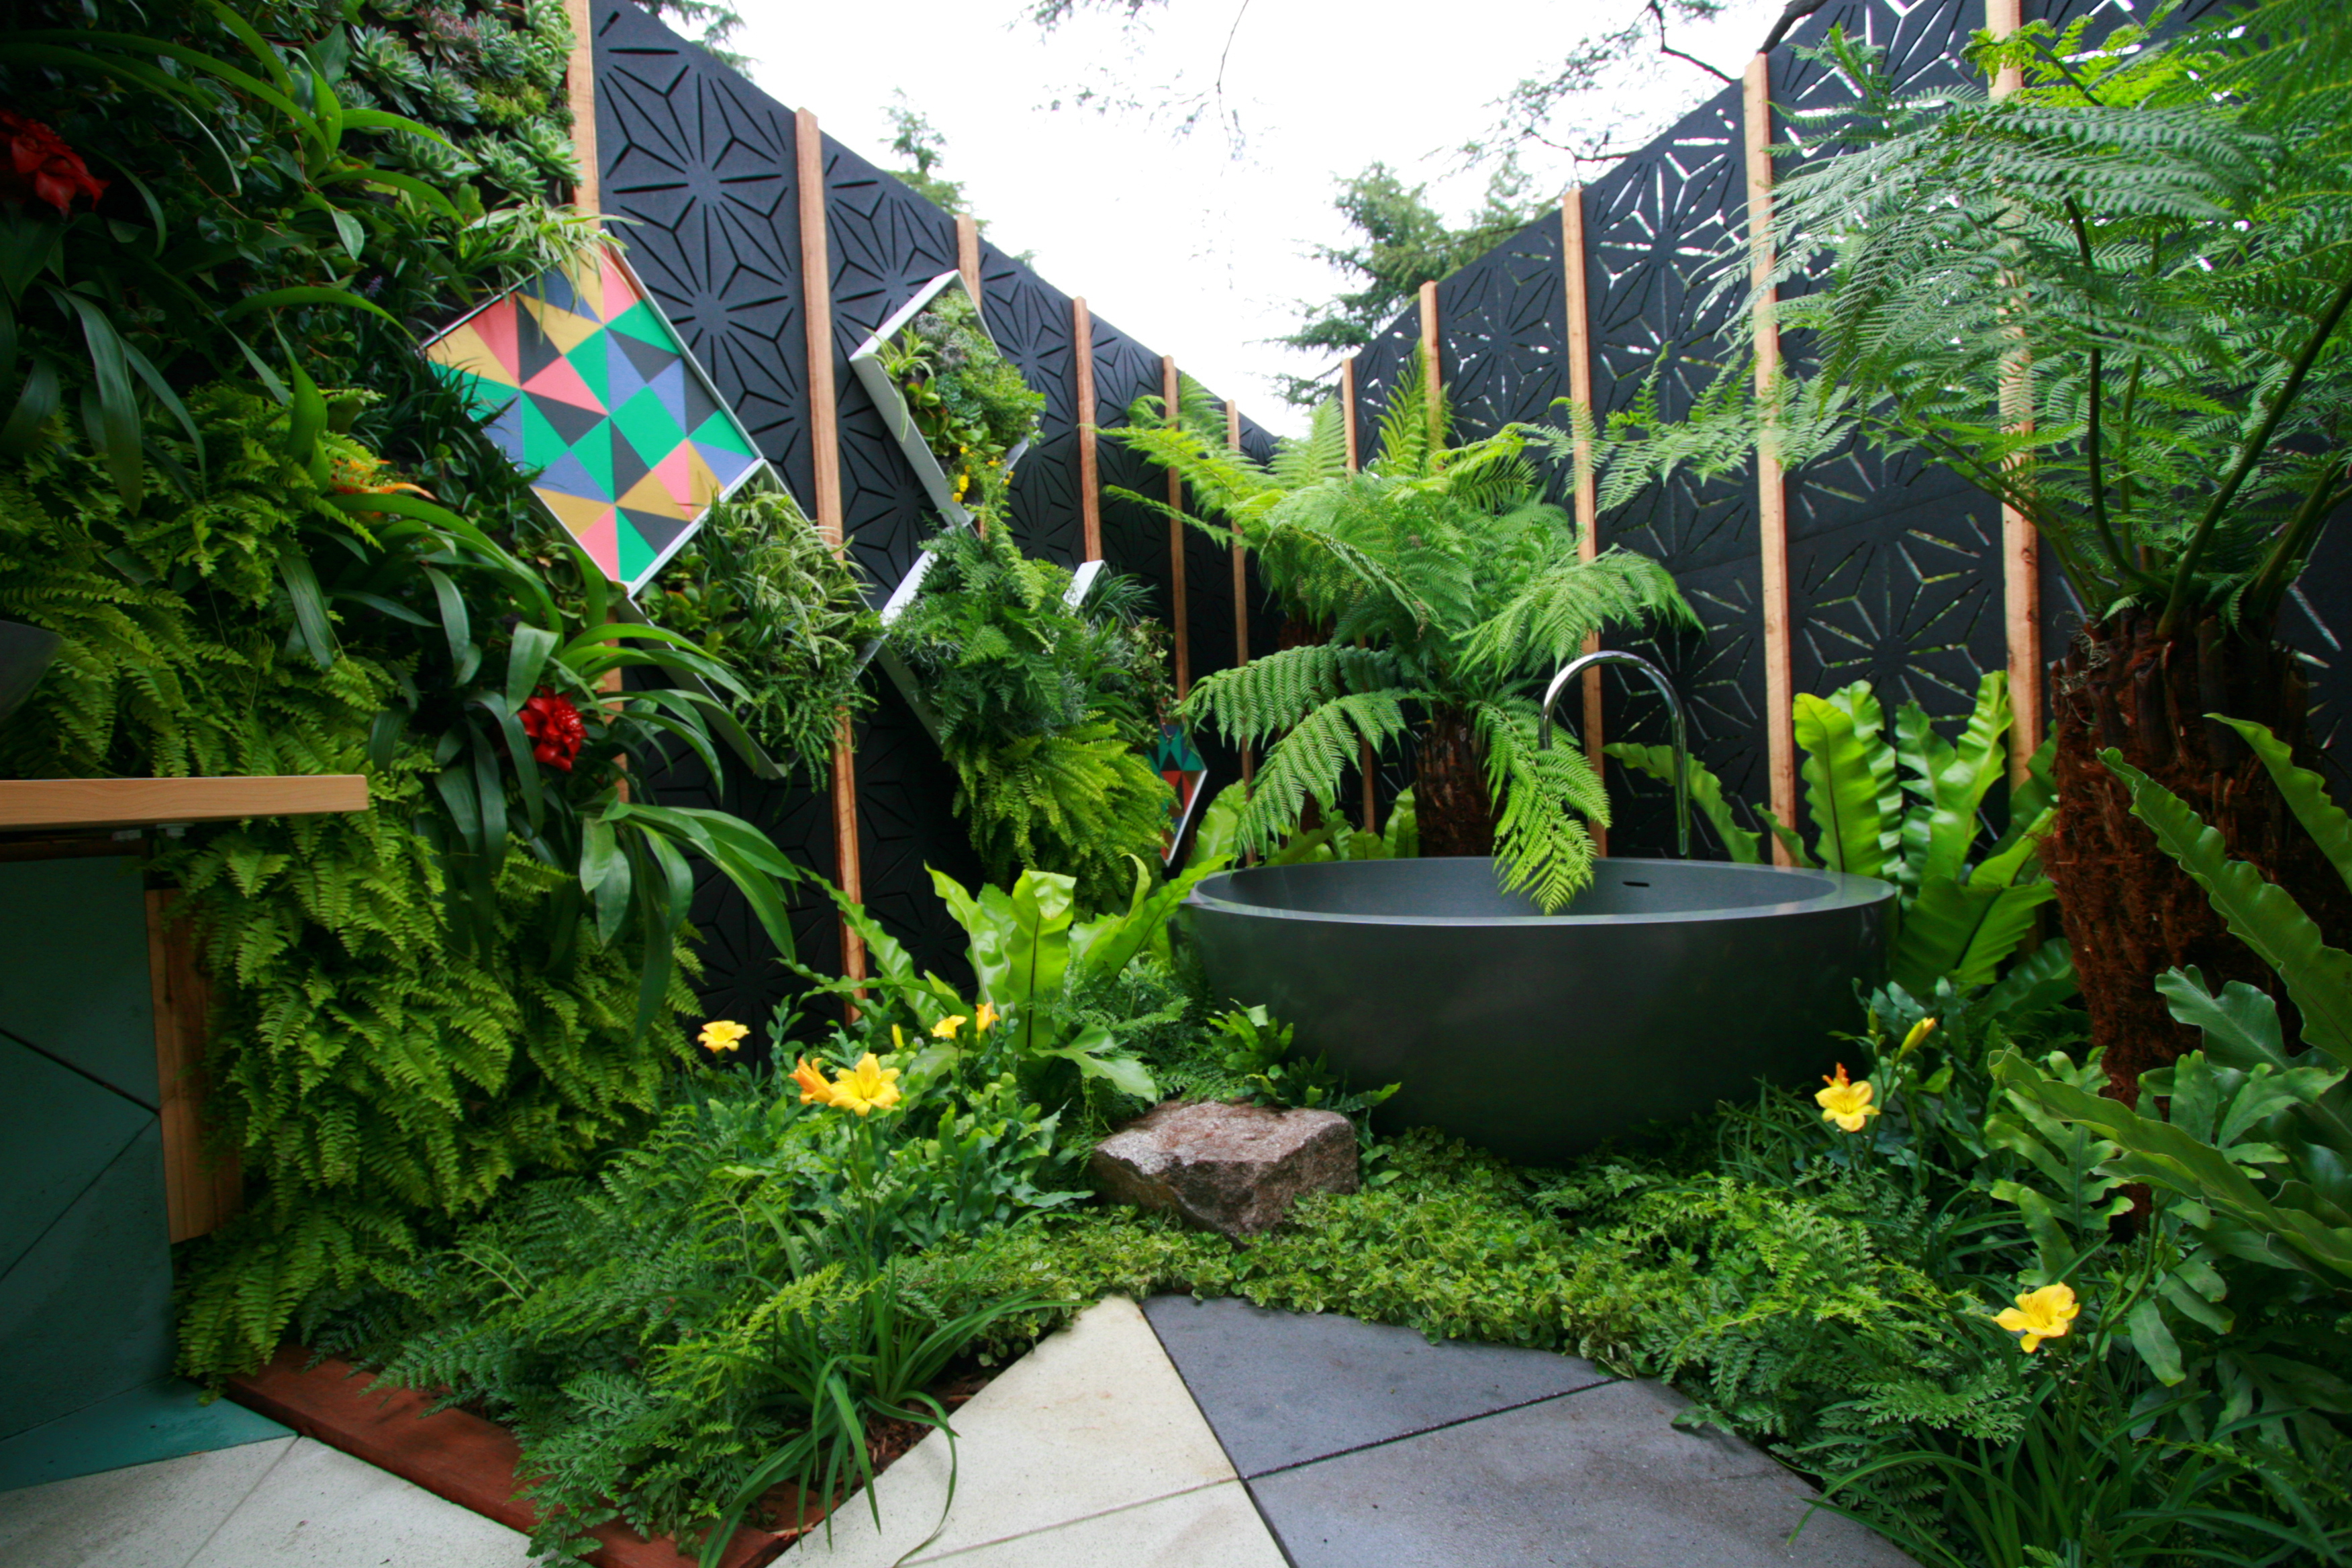 Beautify Your Backyard With These Home Improvement Ideas Hooks pertaining to Backyard Improvement Ideas